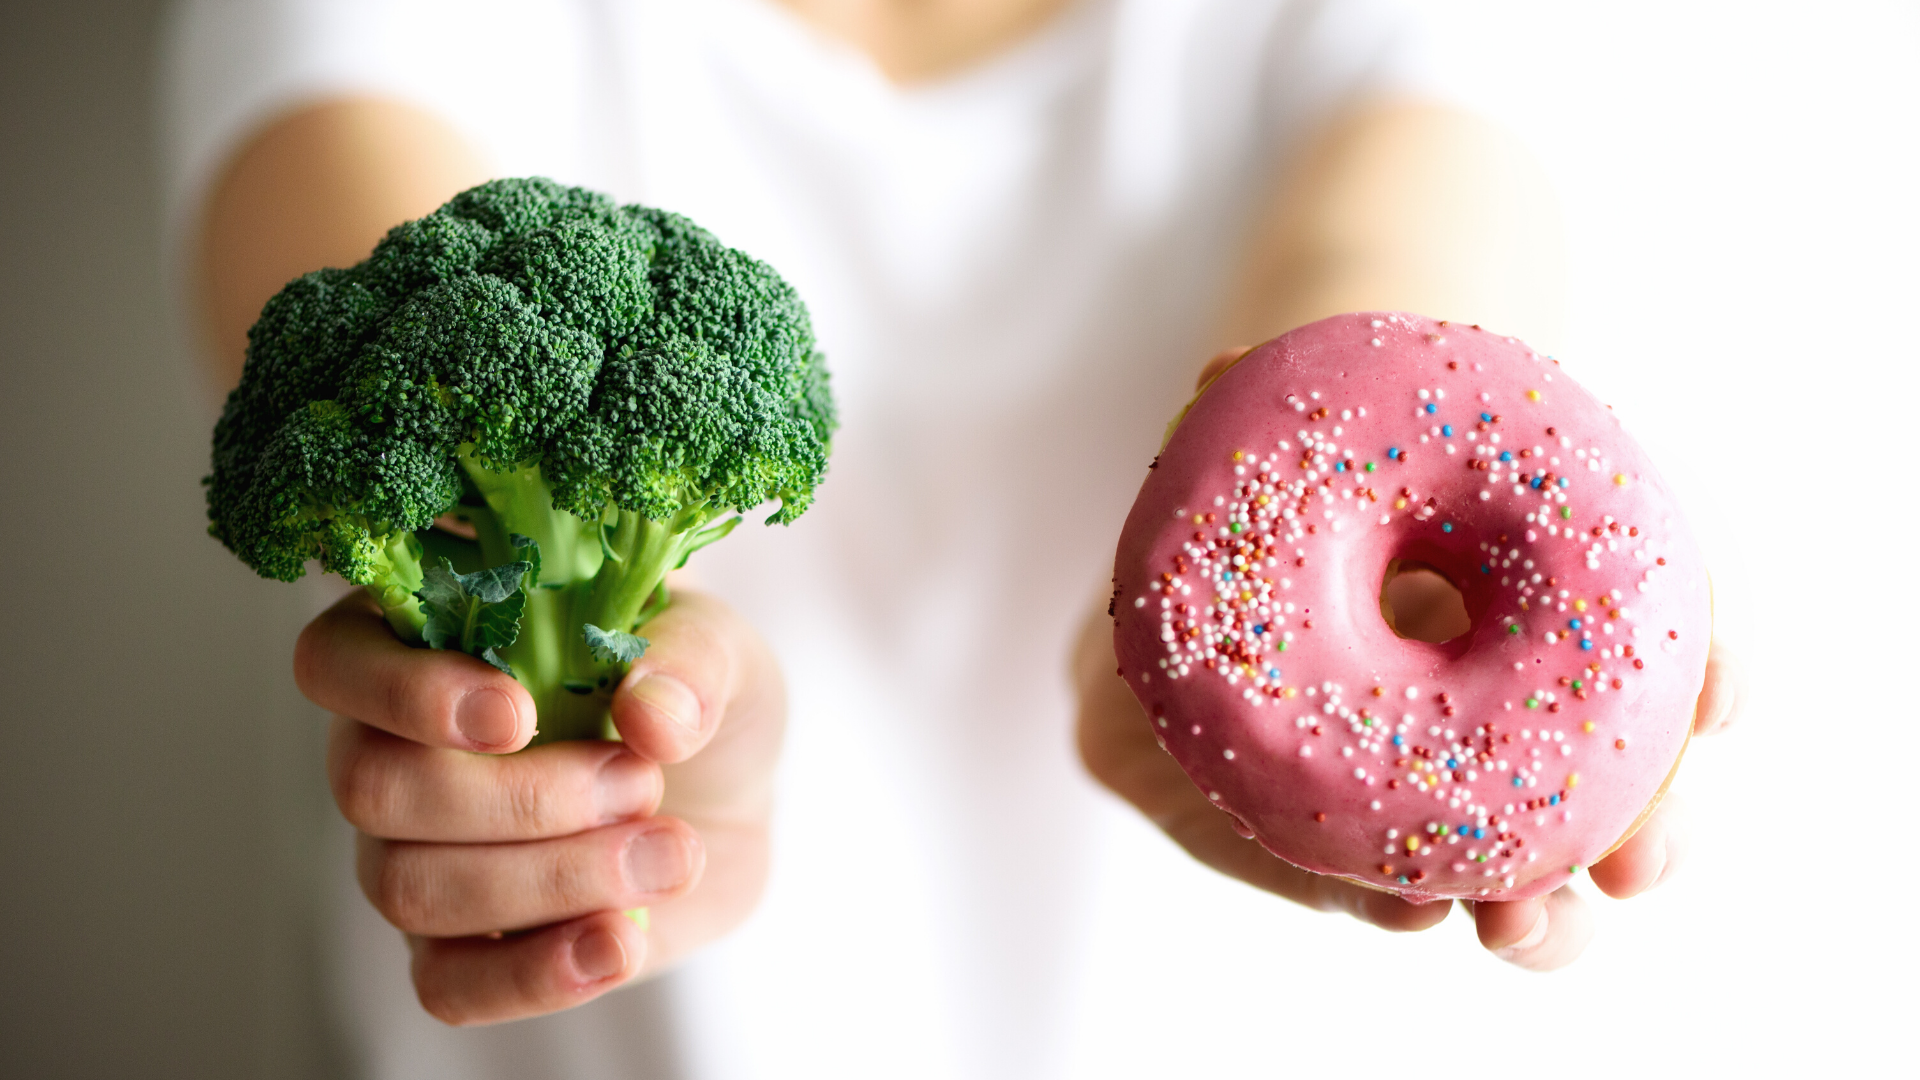 Image of a donut and a head of broccoli.